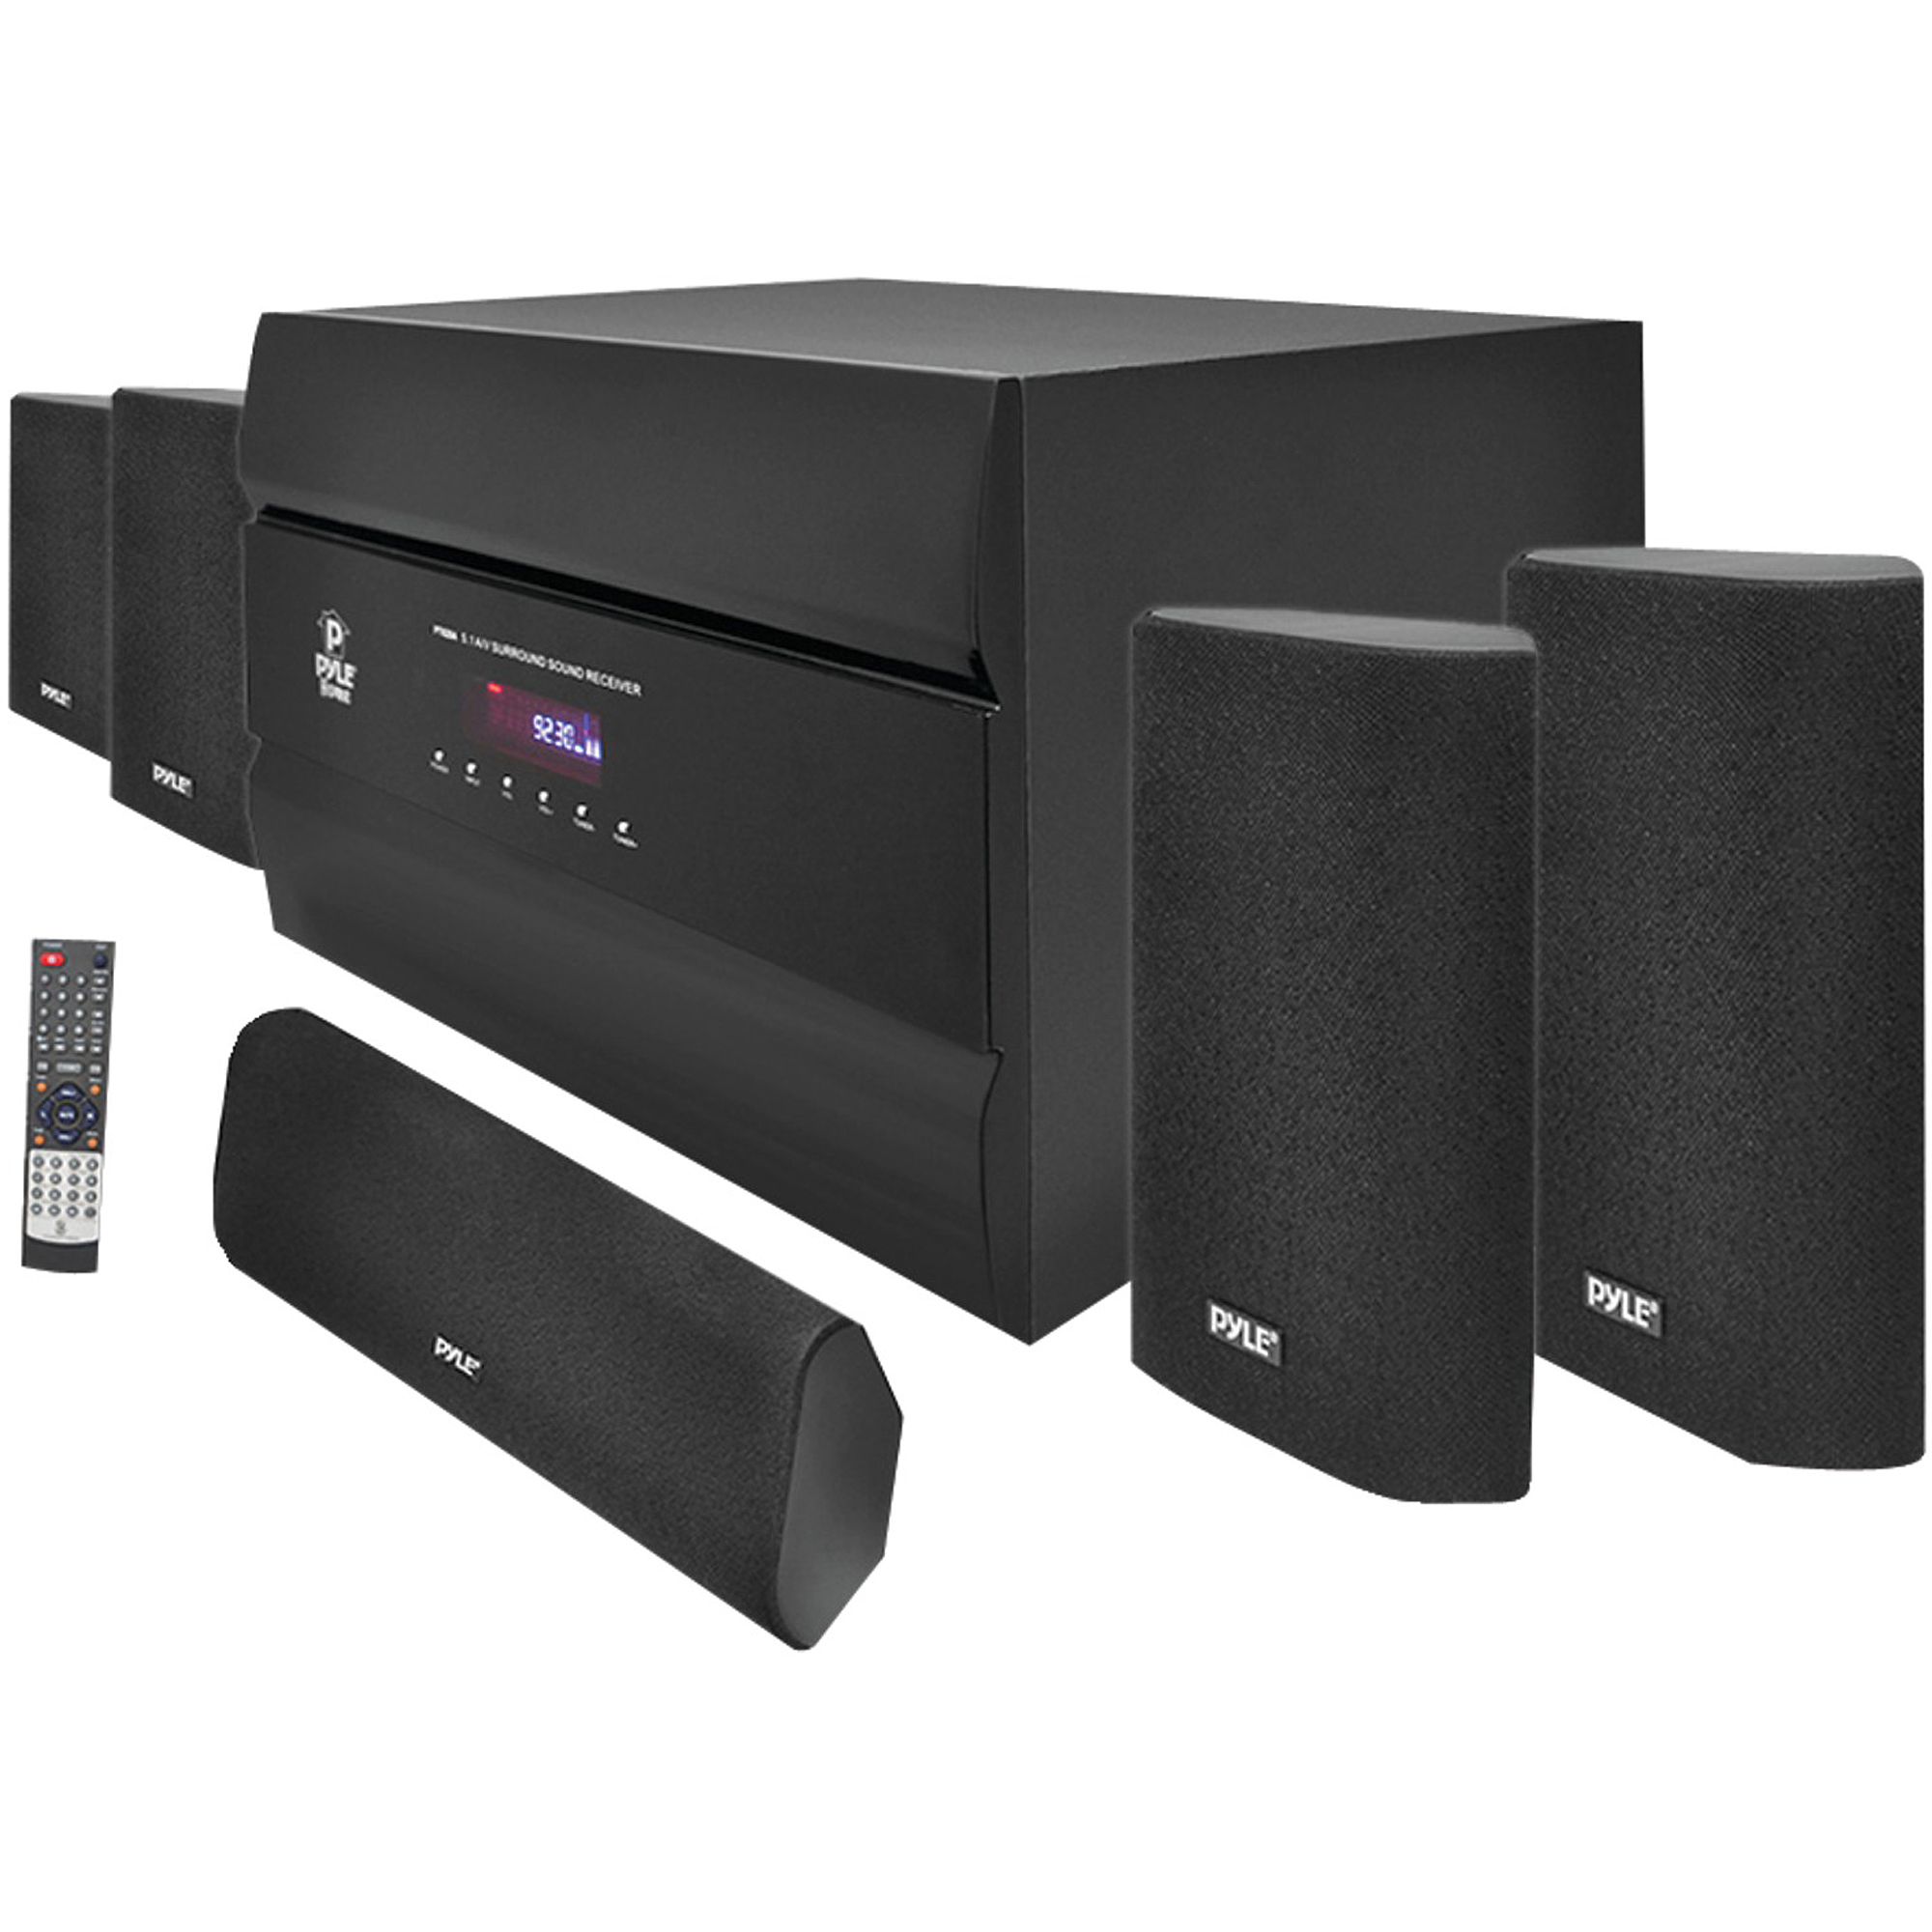 Pyle PT628A 400W 5.1-Channel Home Theater System with AM/FM Tuner, CD, DVD and MP3 Player Compatibility